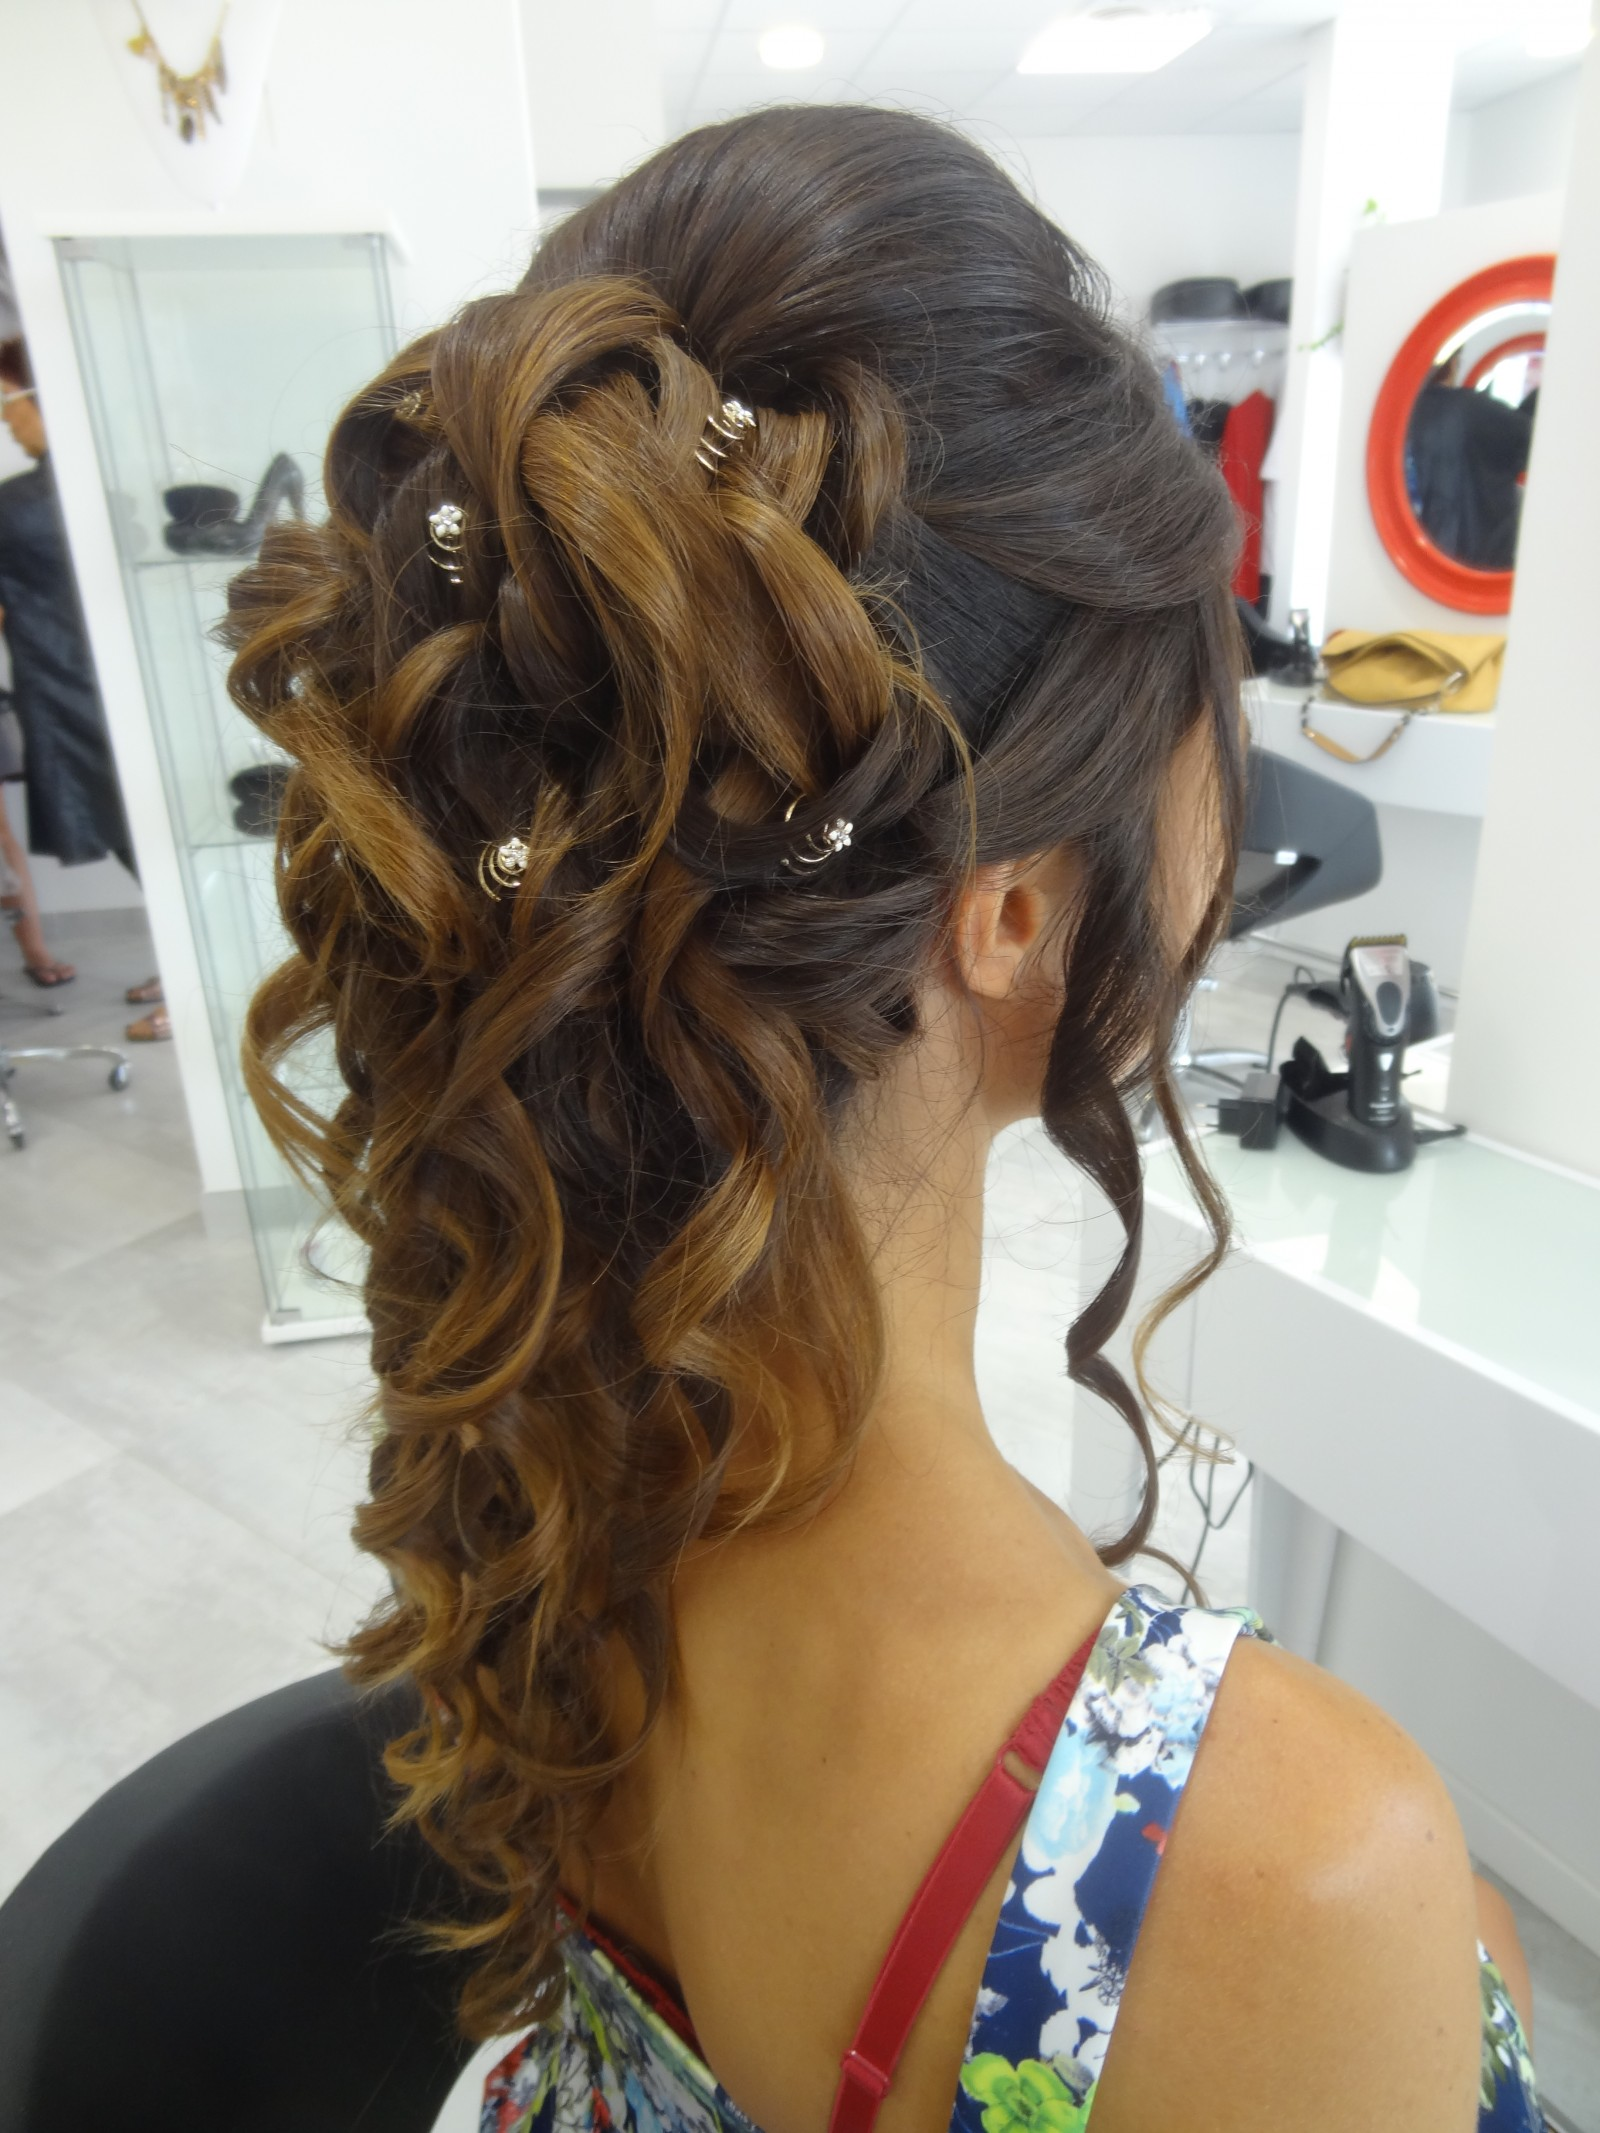 Coiffure Mariage Montpellier Specialiste Chigons Mariees